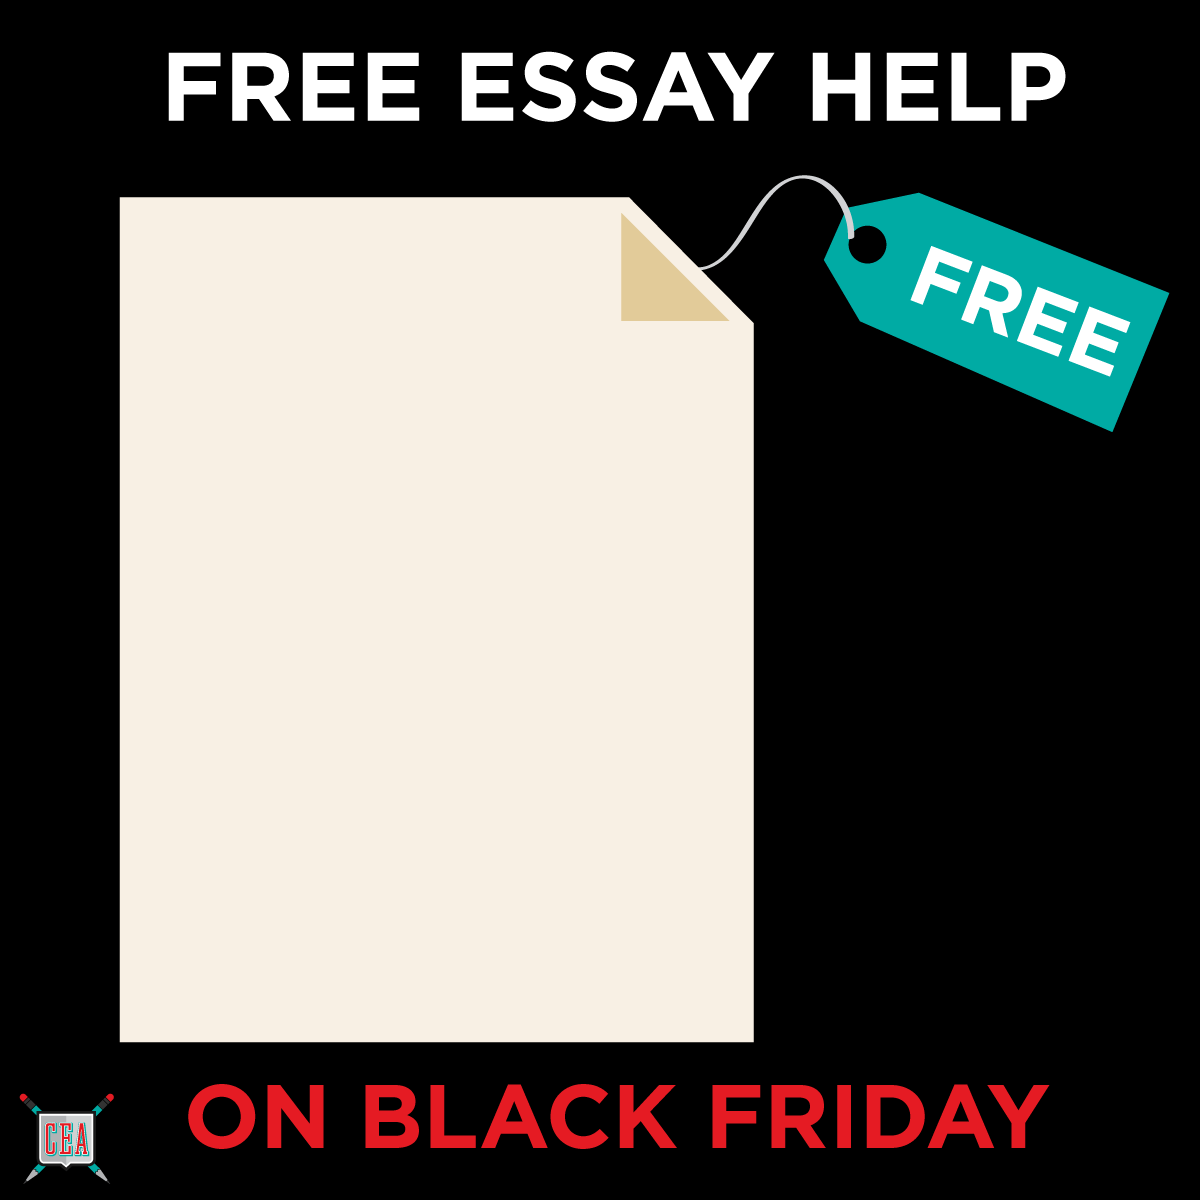 Compare And Contrast Essay Examples For High School New York New York November   Newswirecom  The Experts At College  Essay Advisors Cea Who Have Been Helping Students Conceptualize And Edit   Sample Essay High School also Protein Synthesis Essay College Essay Advisors Will Review  Essays For Free On Black  Research Proposal Essay Topics